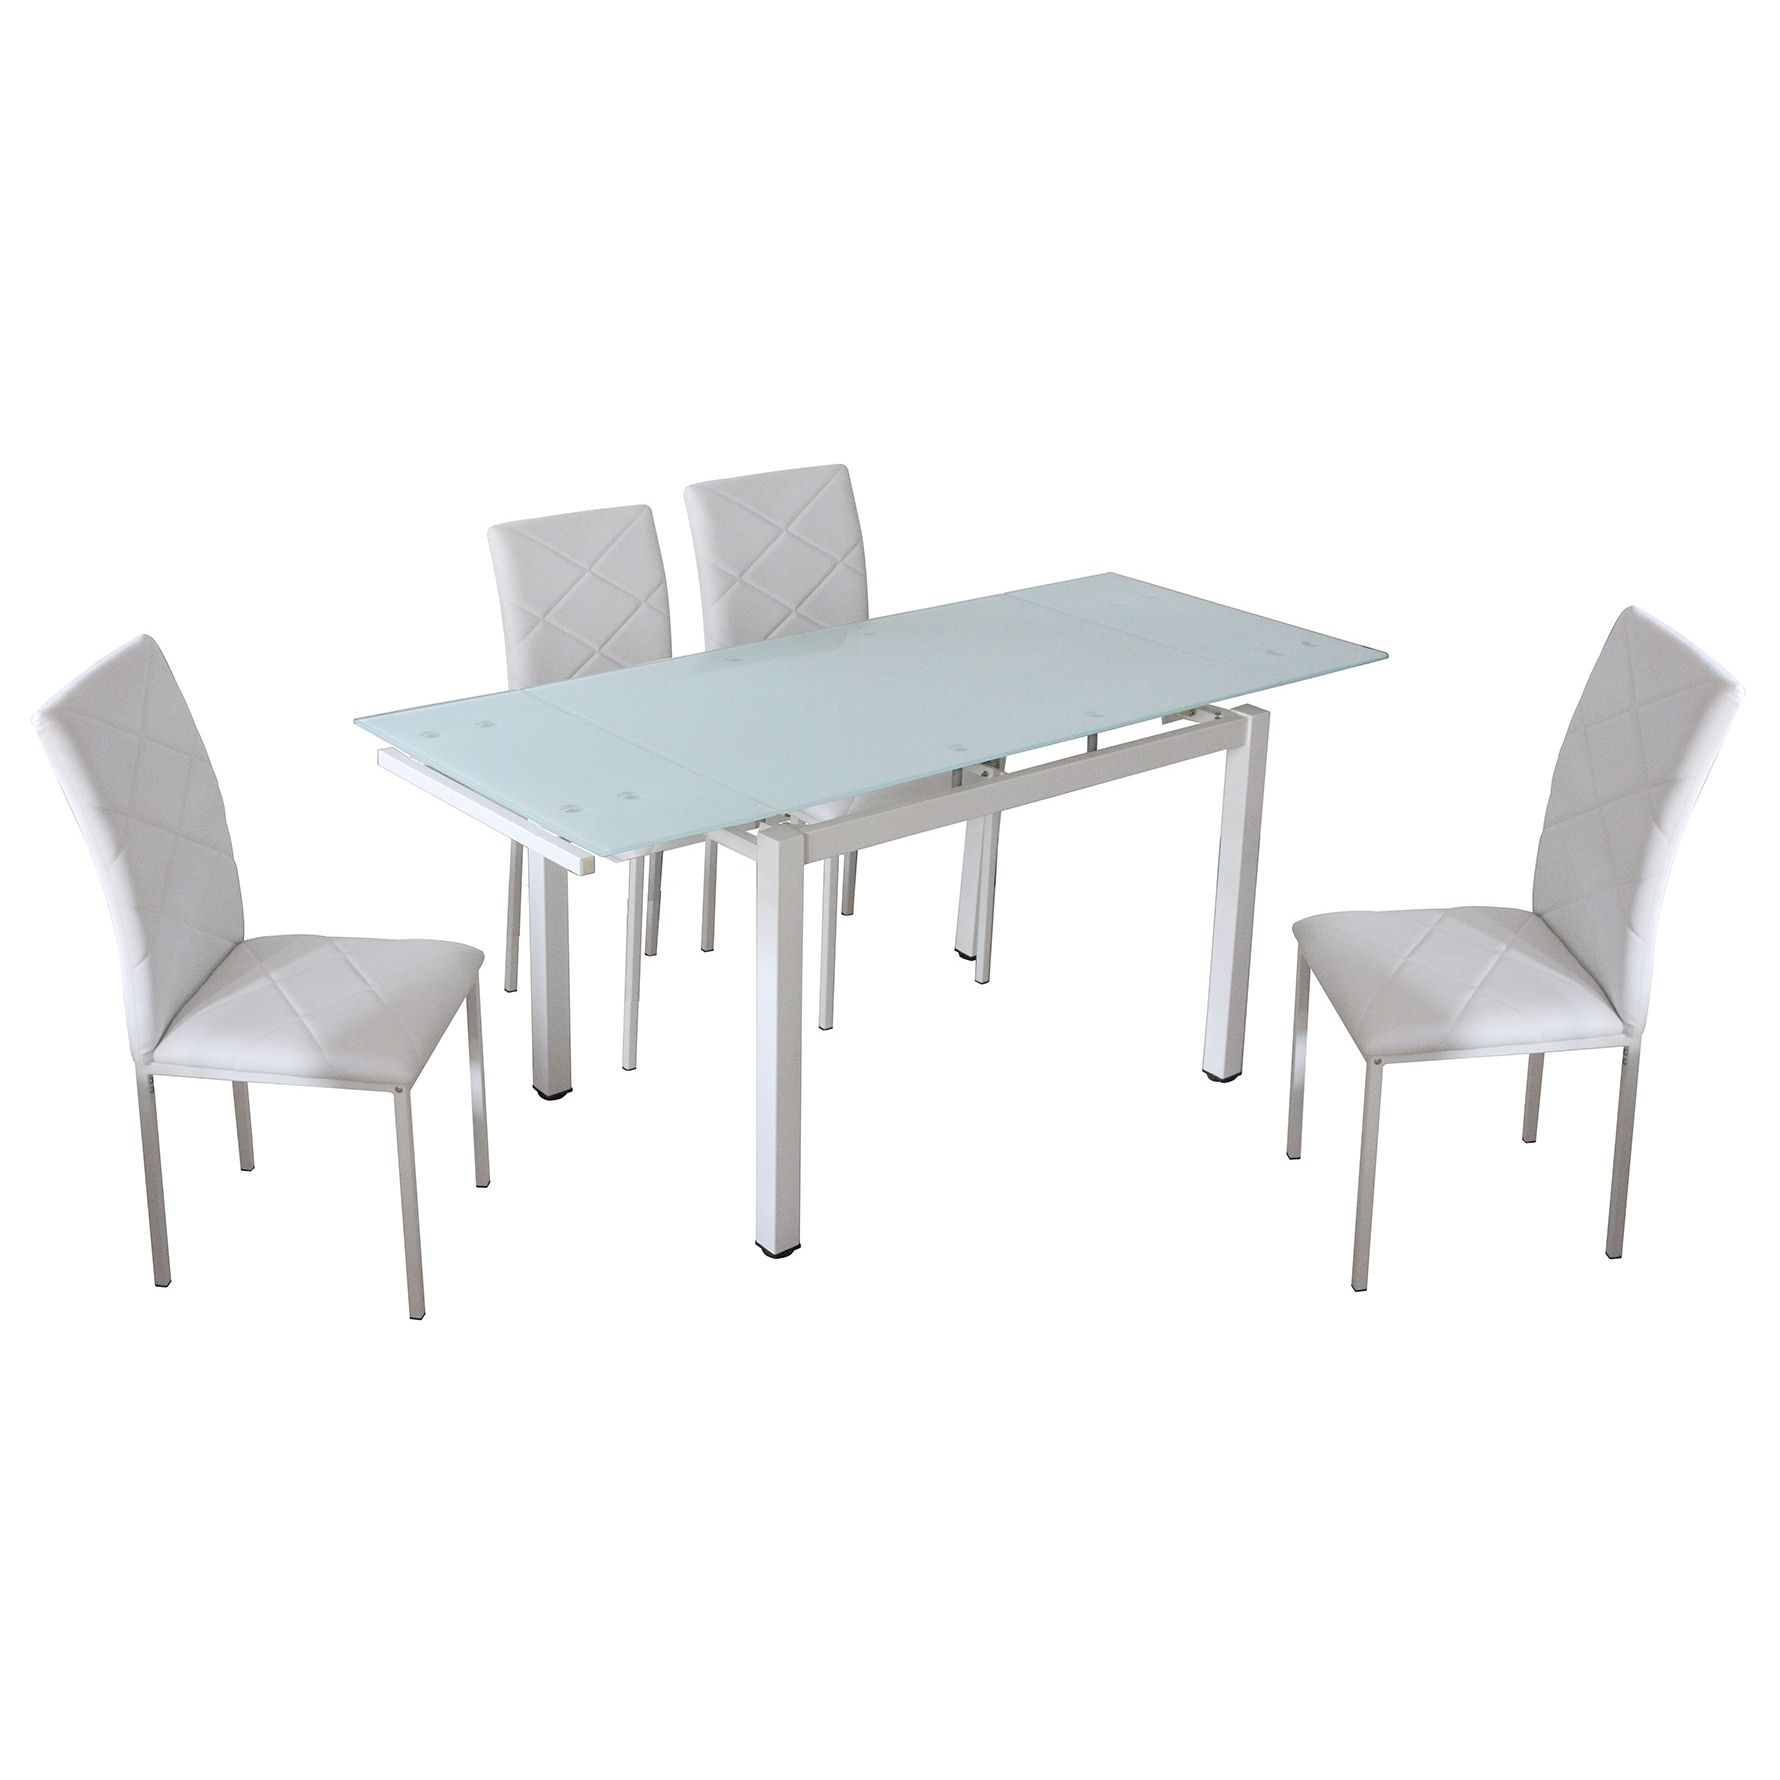 Deco in paris table a manger extensible 4 chaises for Table a manger extensible blanche